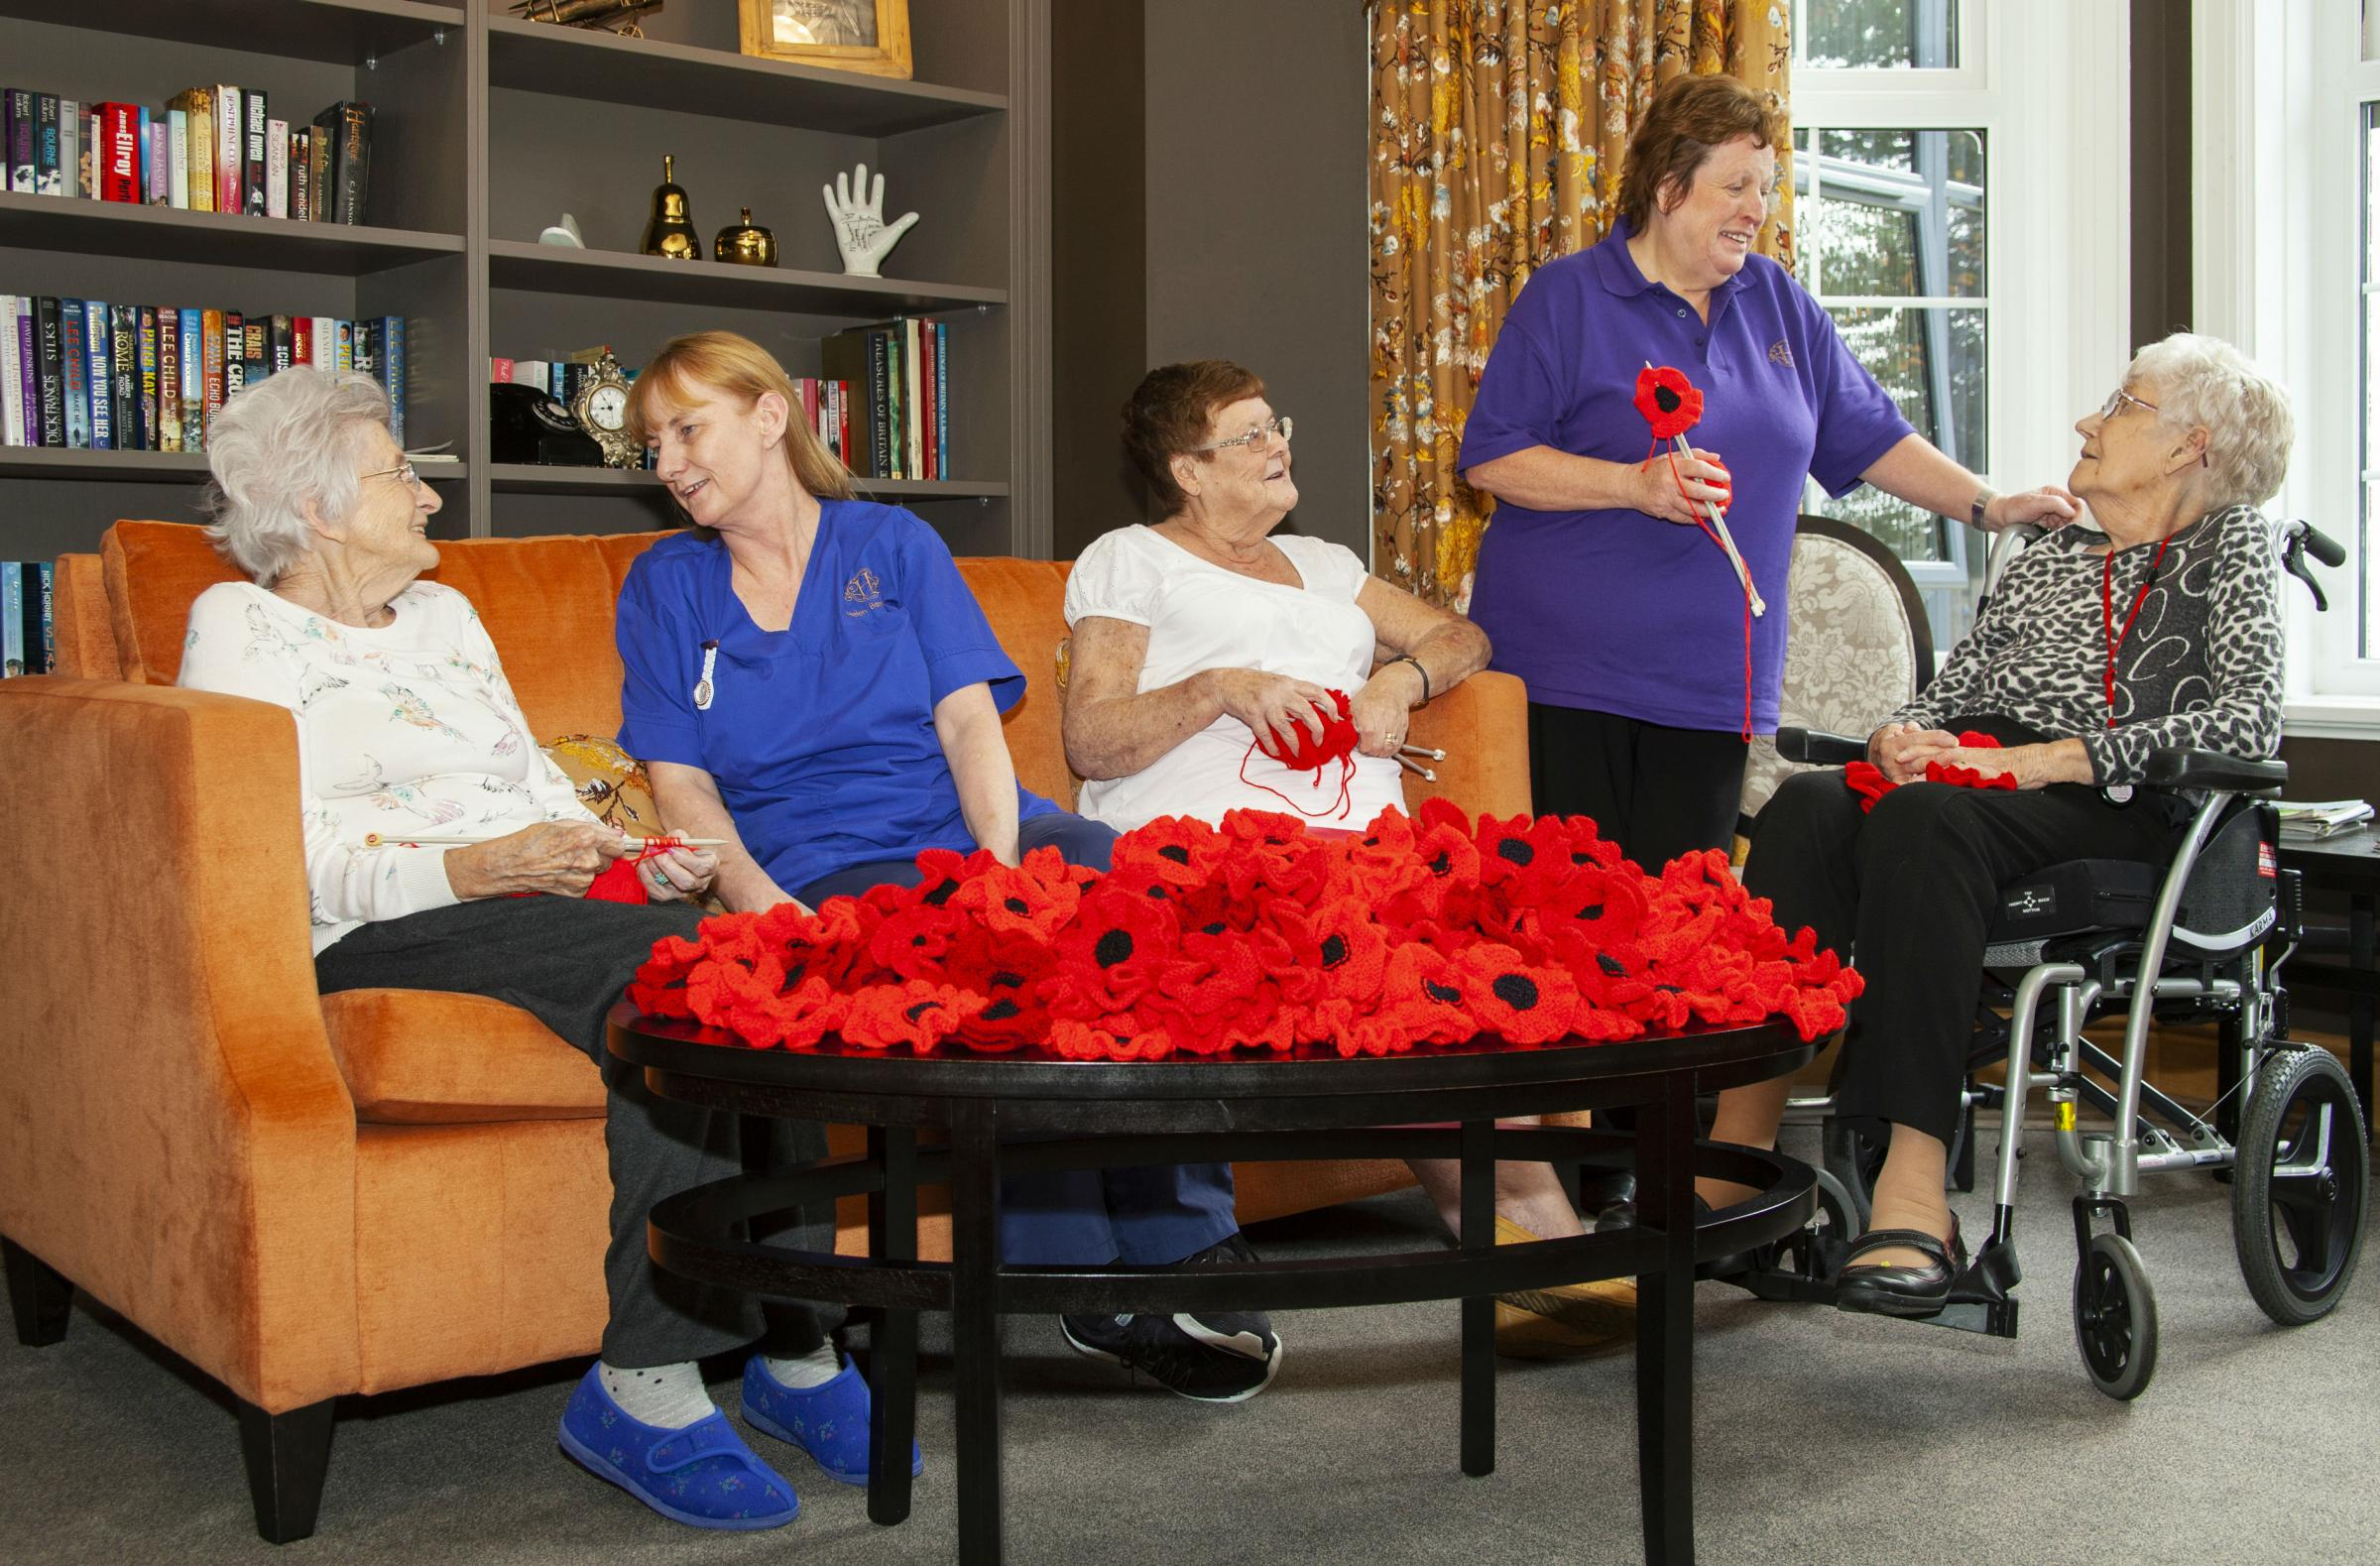 Residents and staff at the Hazlewell care home celebrate their handmade poppies